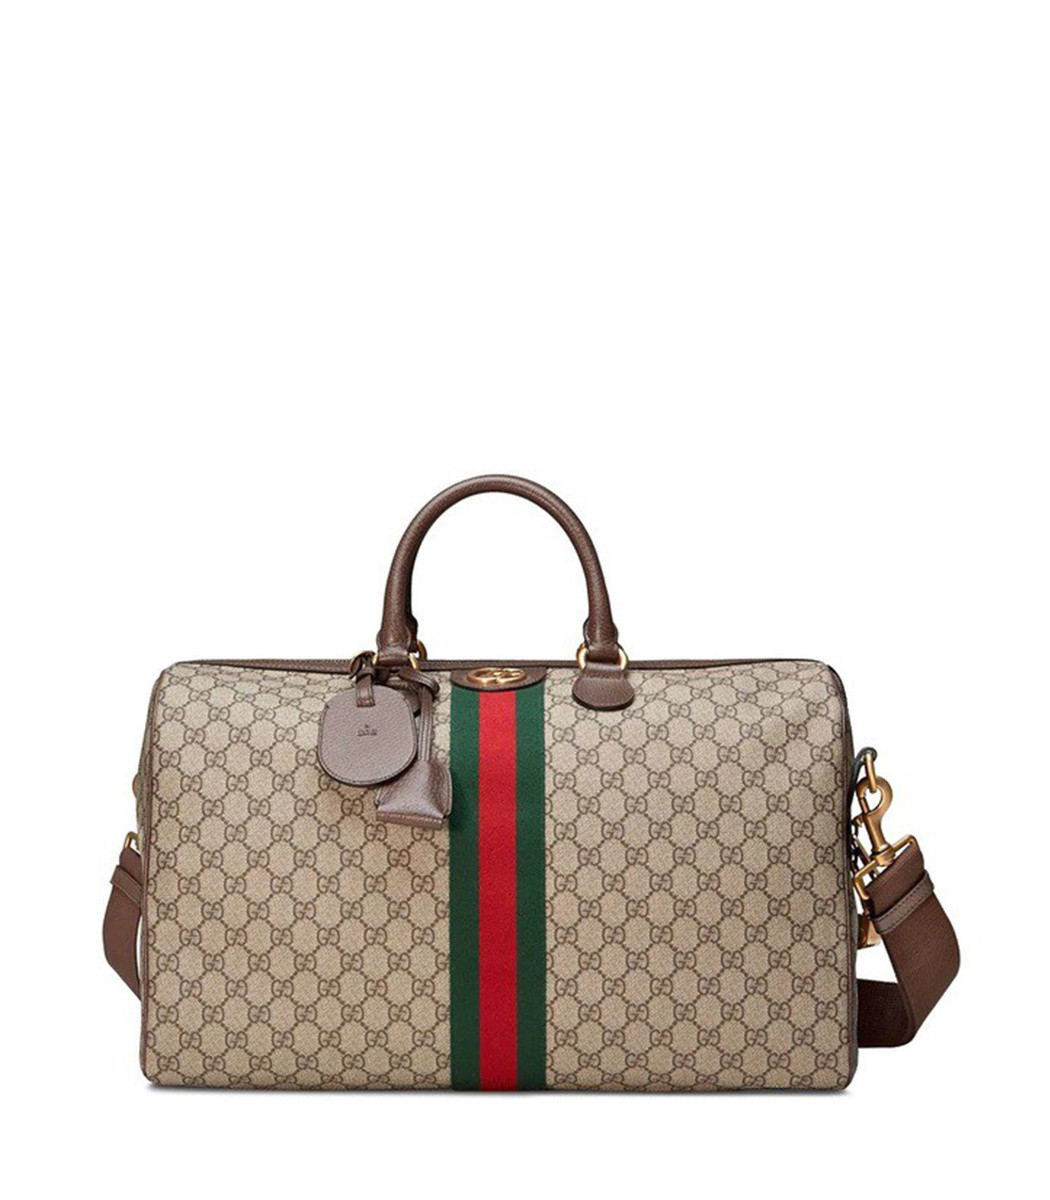 ed7298079cd6 Home / Gucci / Ophidia GG Medium Carry-on Duffle. prev